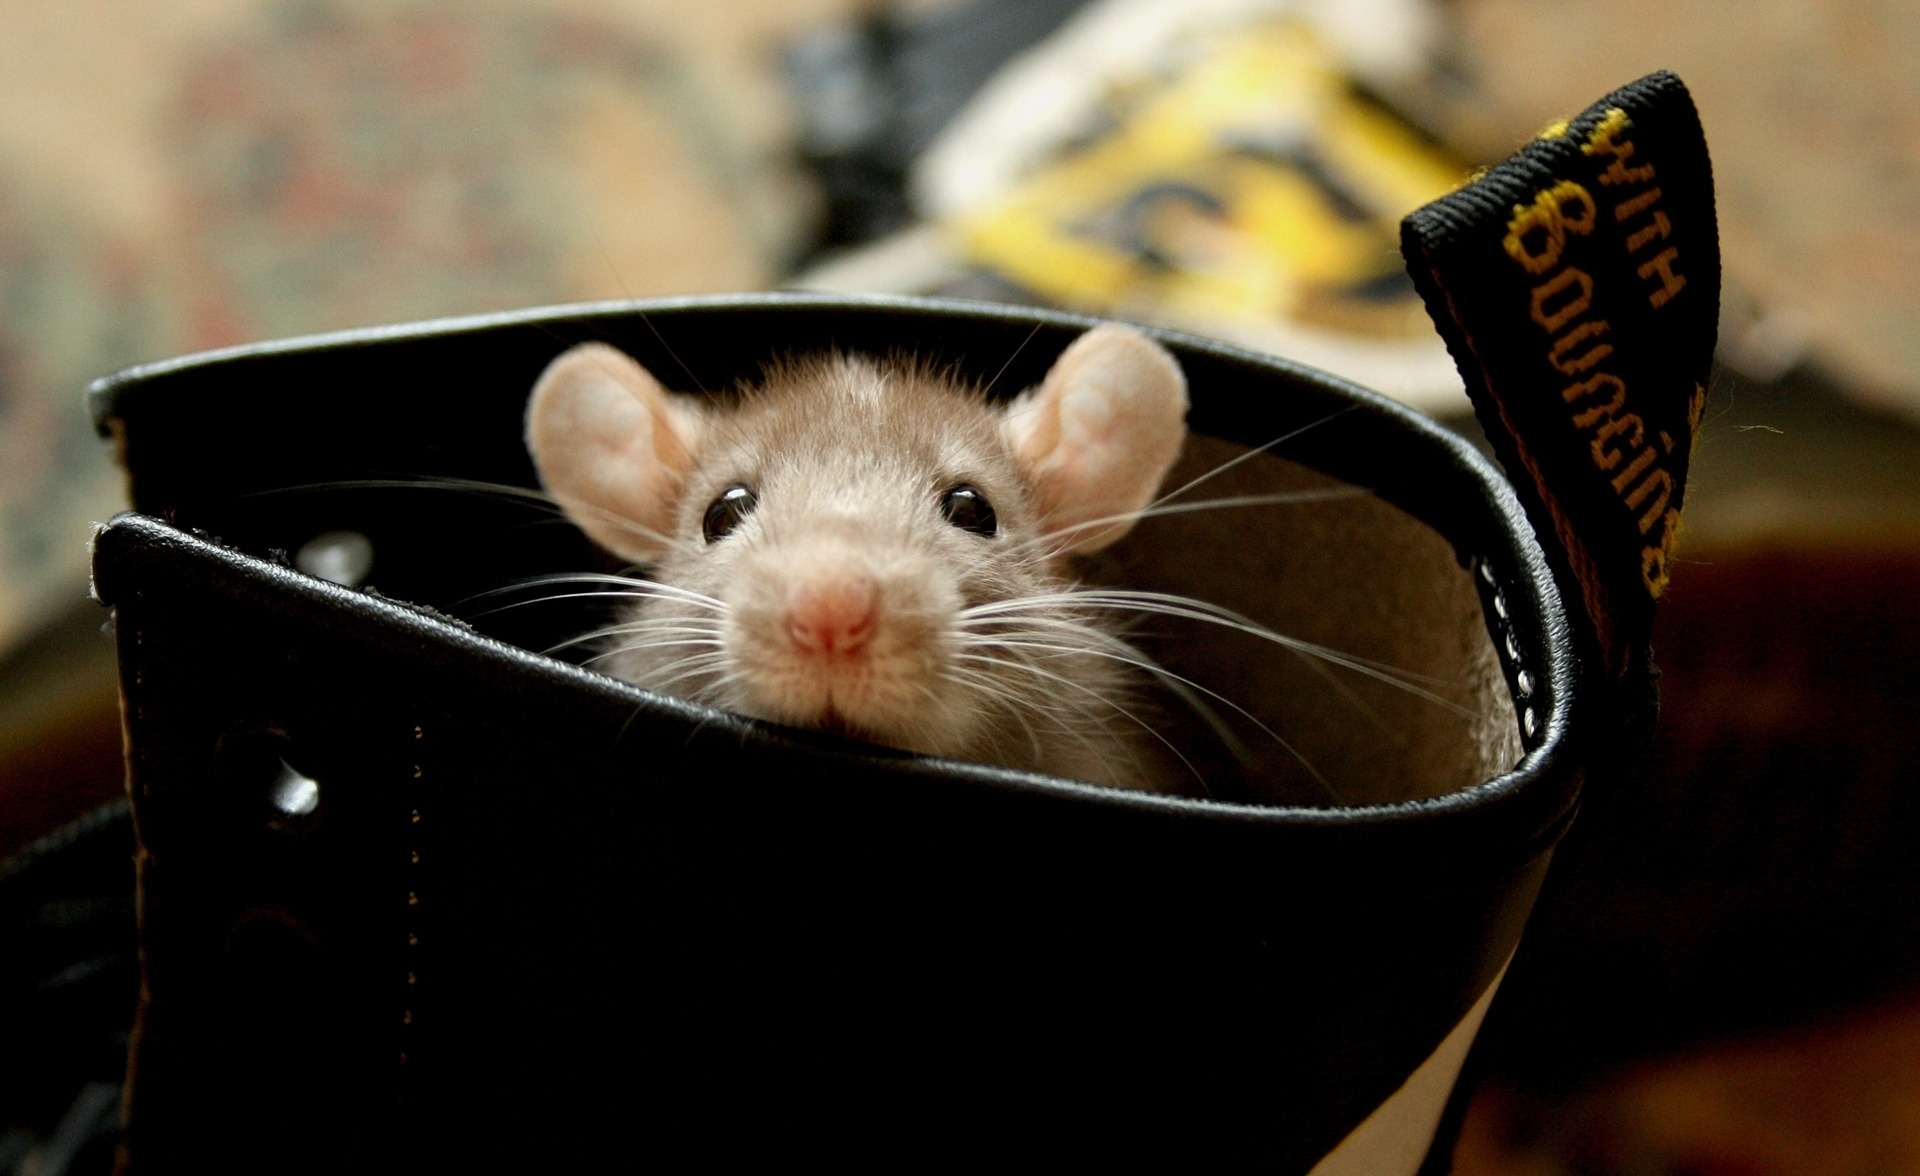 59683 download wallpaper Animals, Rat, Hamster, Rodent, Ears, Climb screensavers and pictures for free